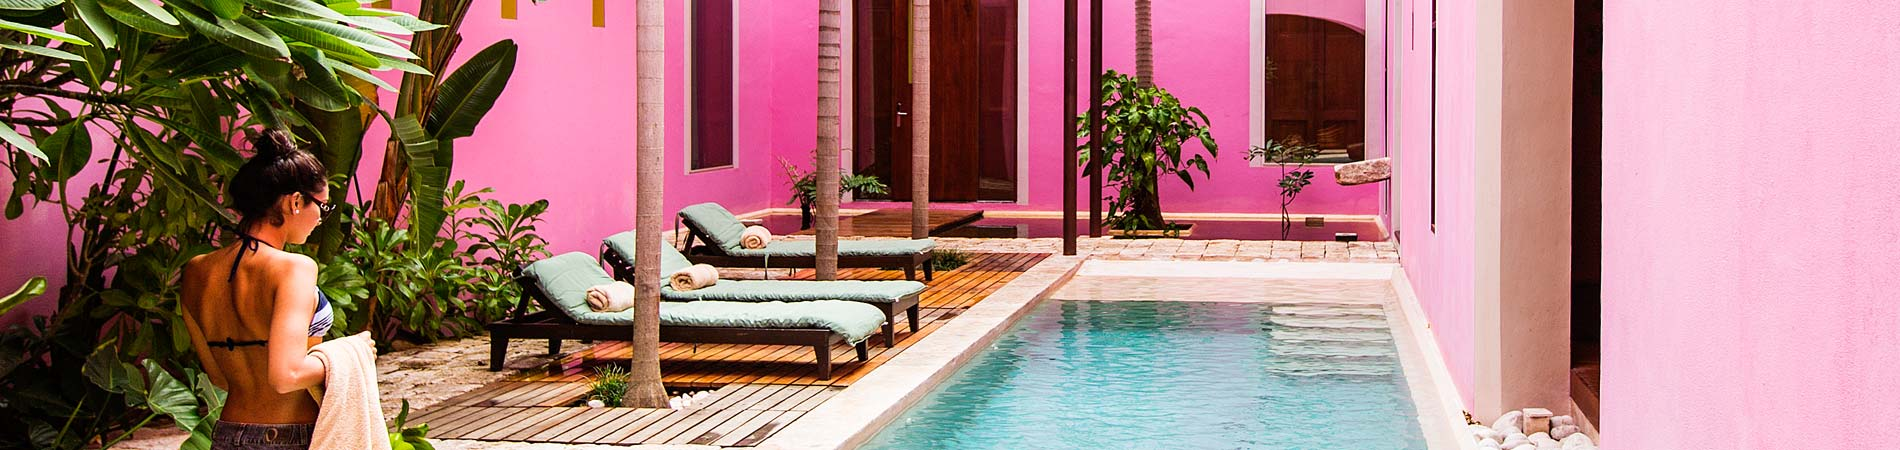 Rosas xocolate merida journey mexico for Design hotel yucatan